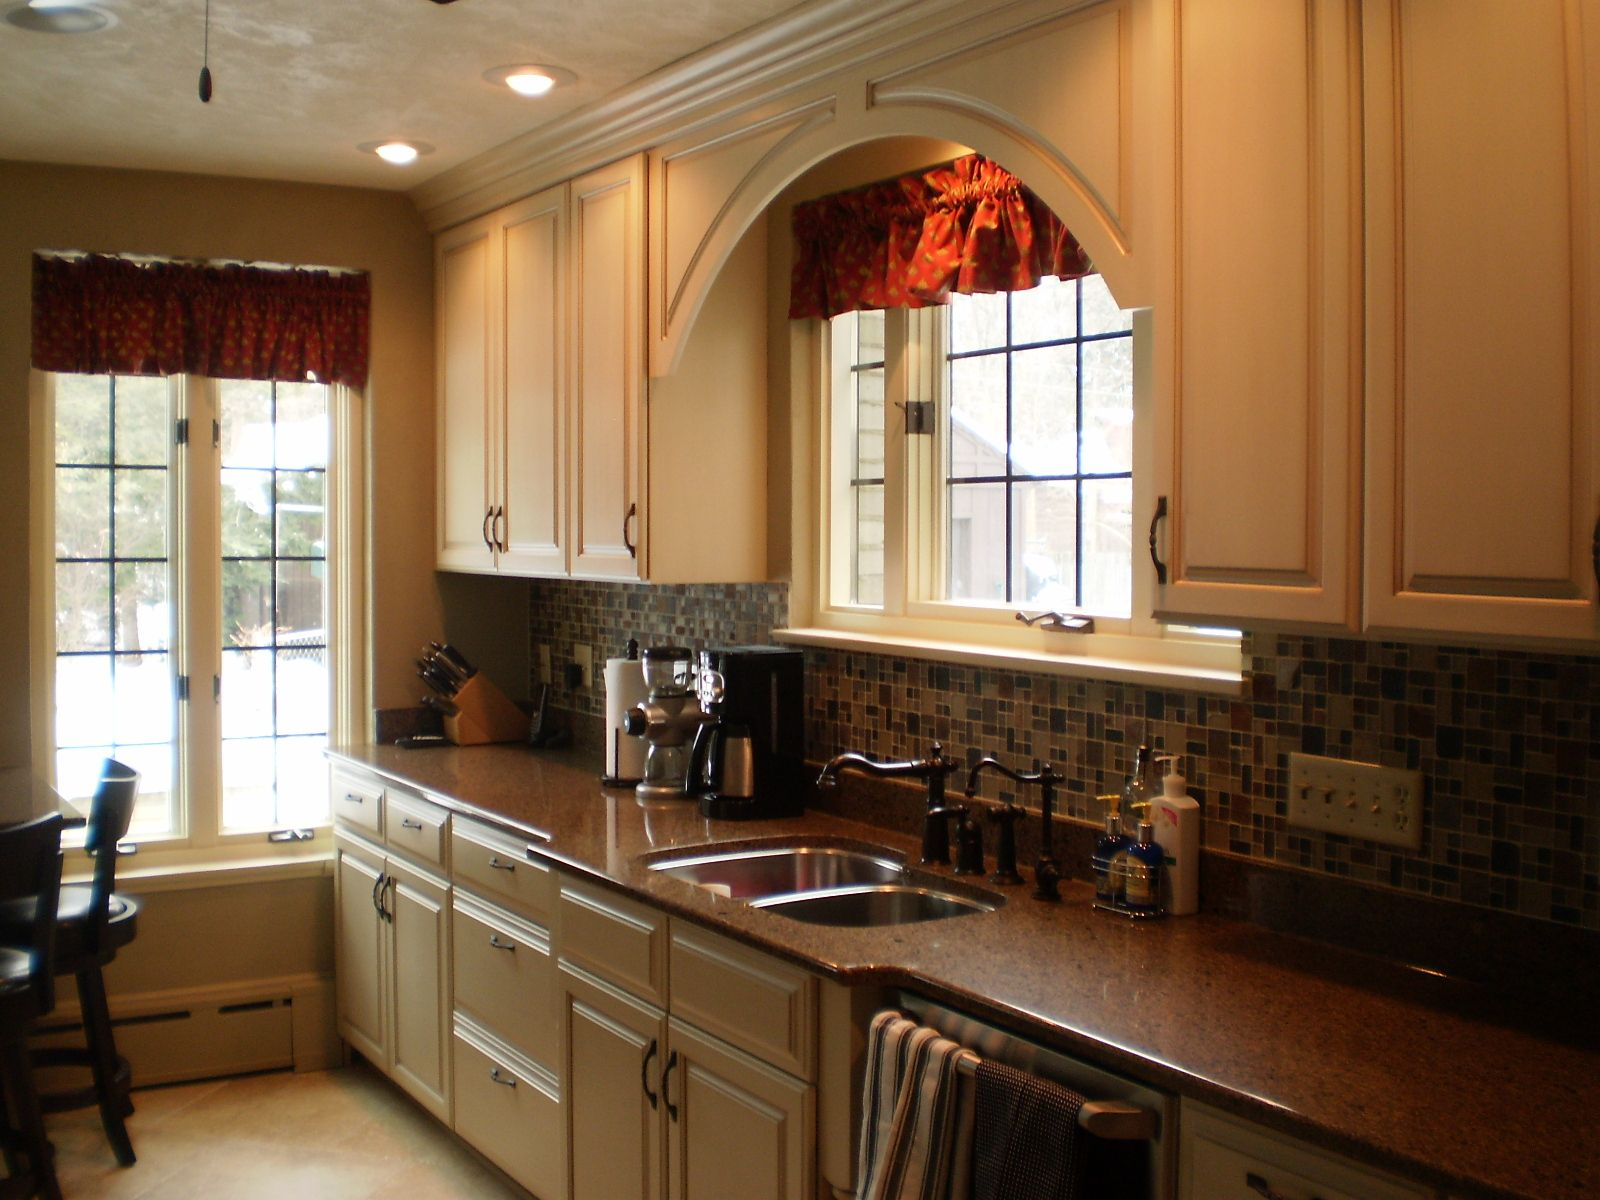 Custom Omega Cabinetry In An Opaque Finish Bumped Out Sink Base And Arched Valance Above Window Kitchen Transformation Kitchen Kitchen Remodel